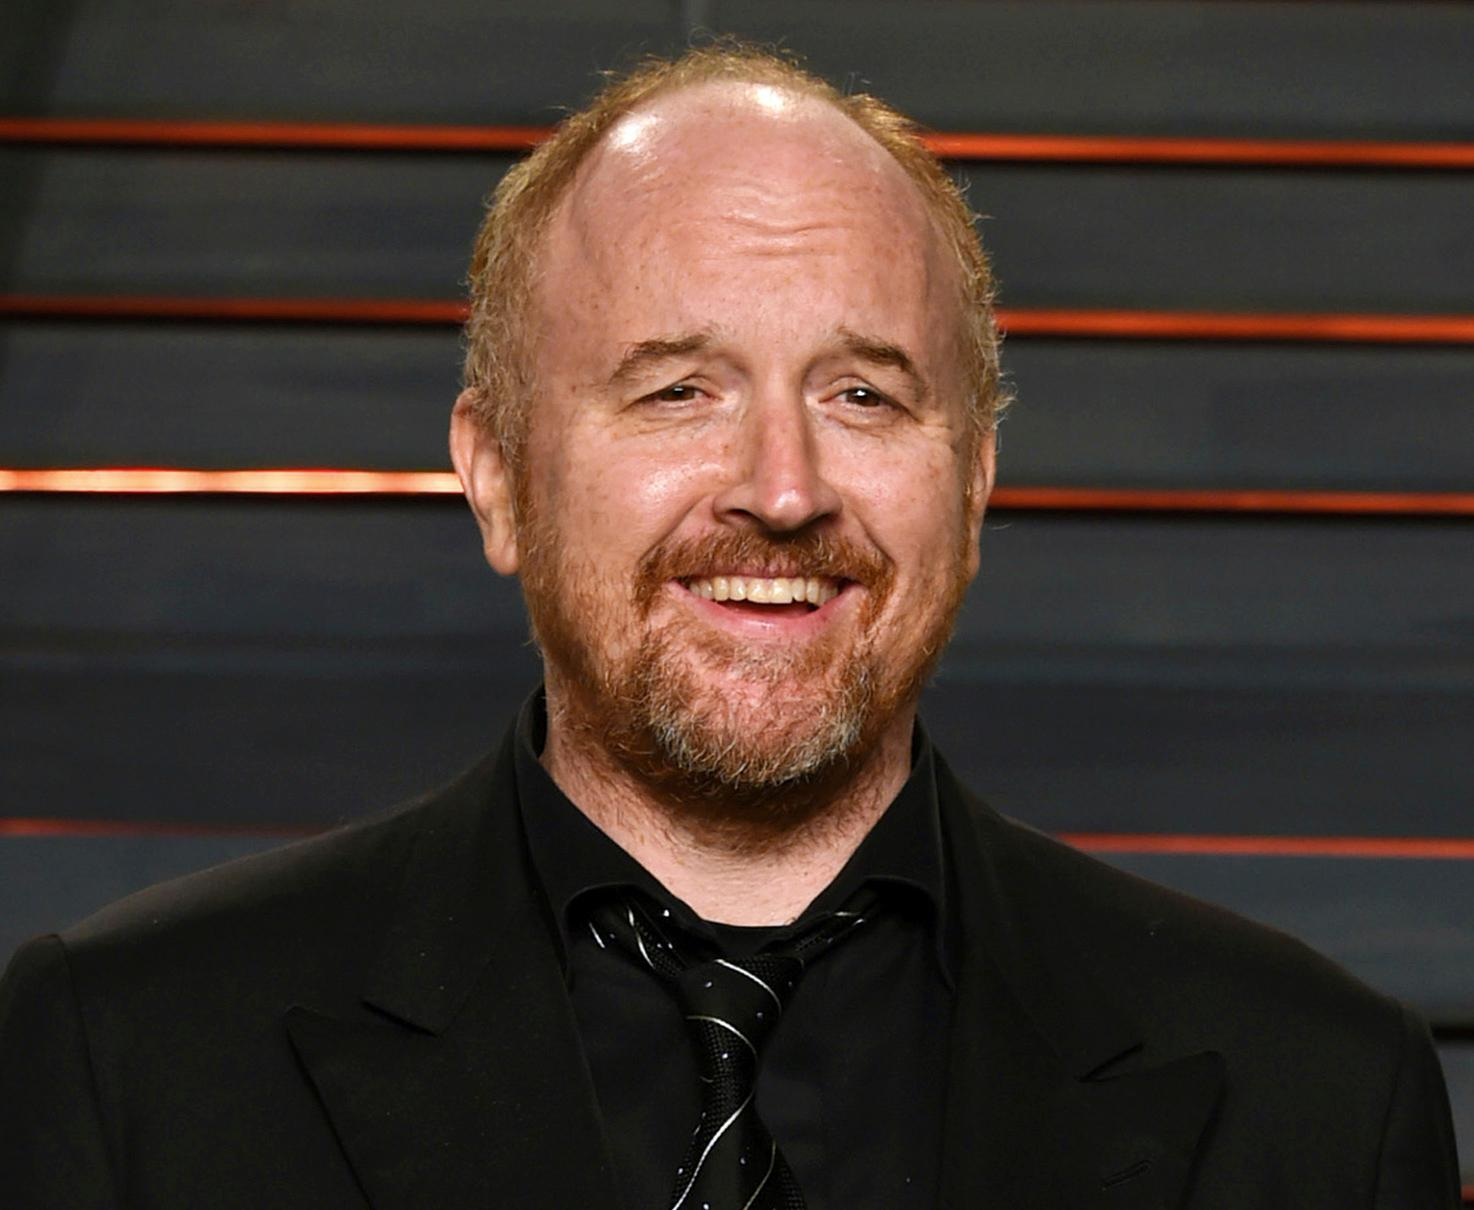 FILE - In this Feb. 28, 2016 file photo, Louis C.K. arrives at the Vanity Fair Oscar Party in Beverly Hills, Calif. (Photo by Evan Agostini/Invision/AP, File)<p></p>